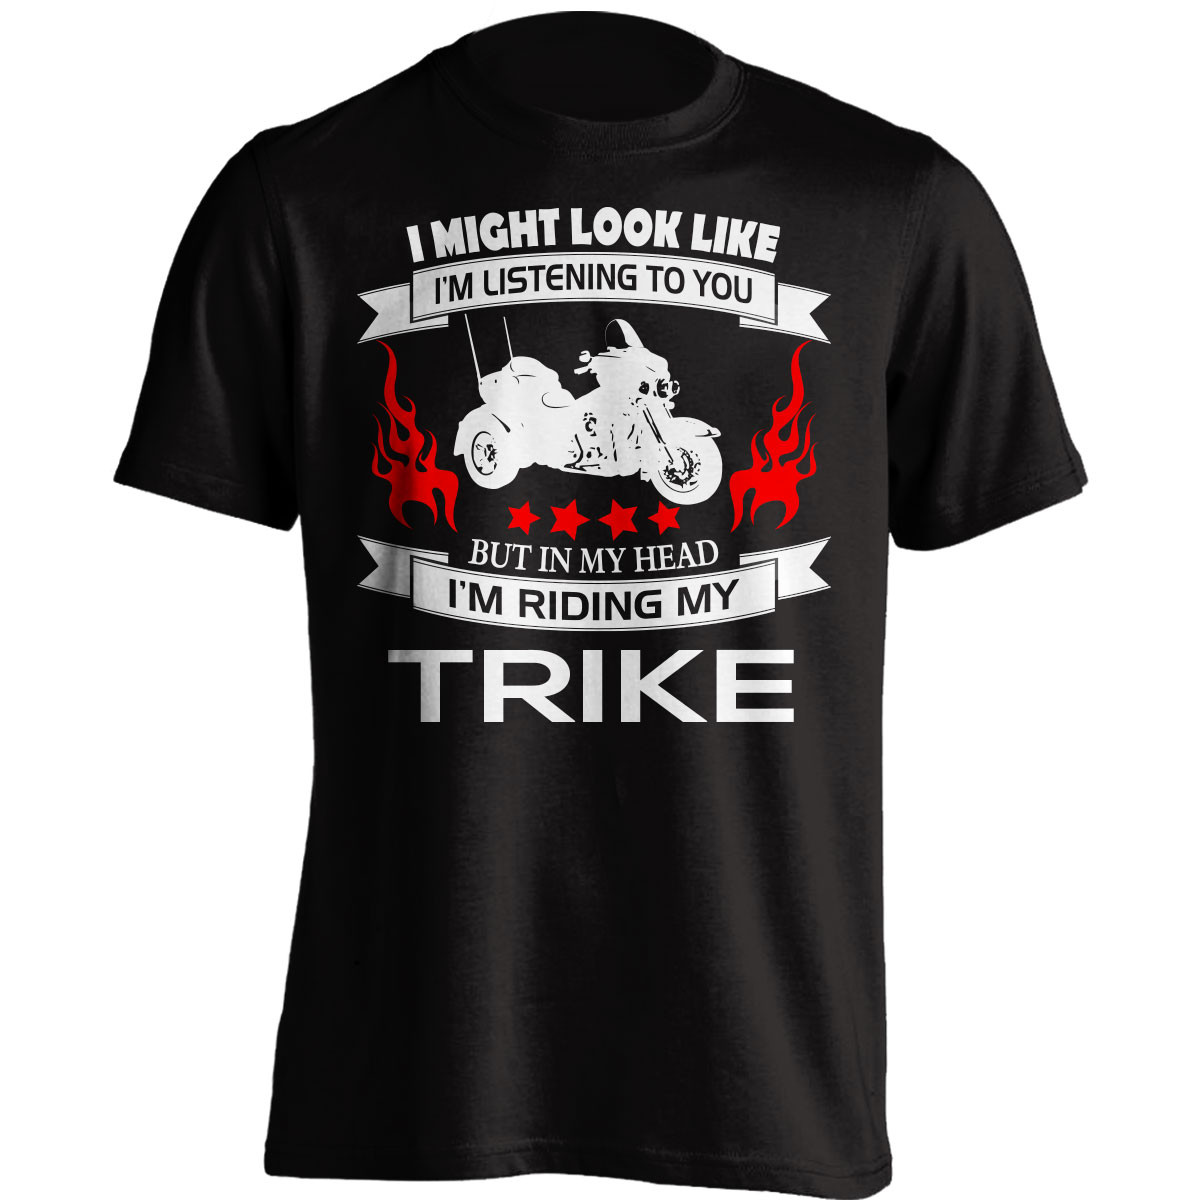 """I Might Look Like I'm Listening To You"" Trike T-Shirt"